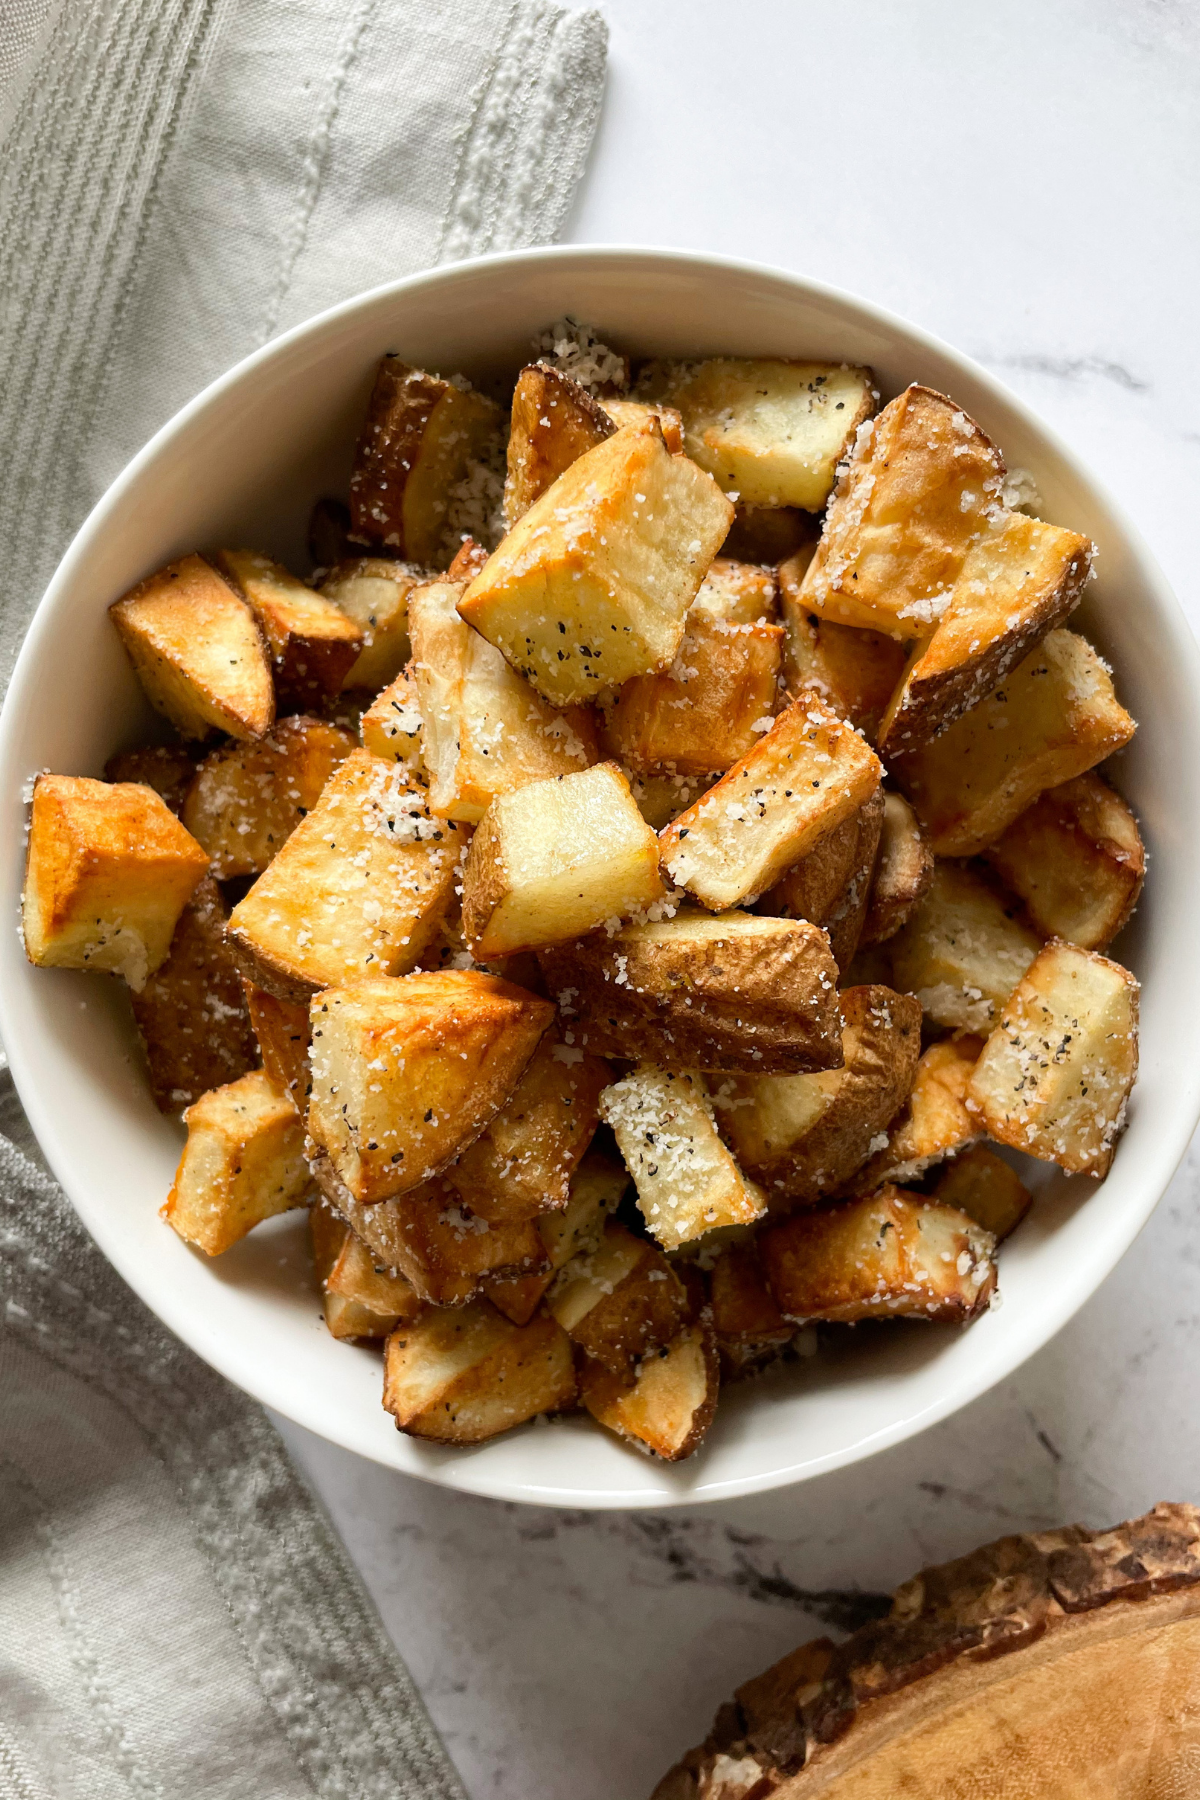 cooked potatoes in a white bowl